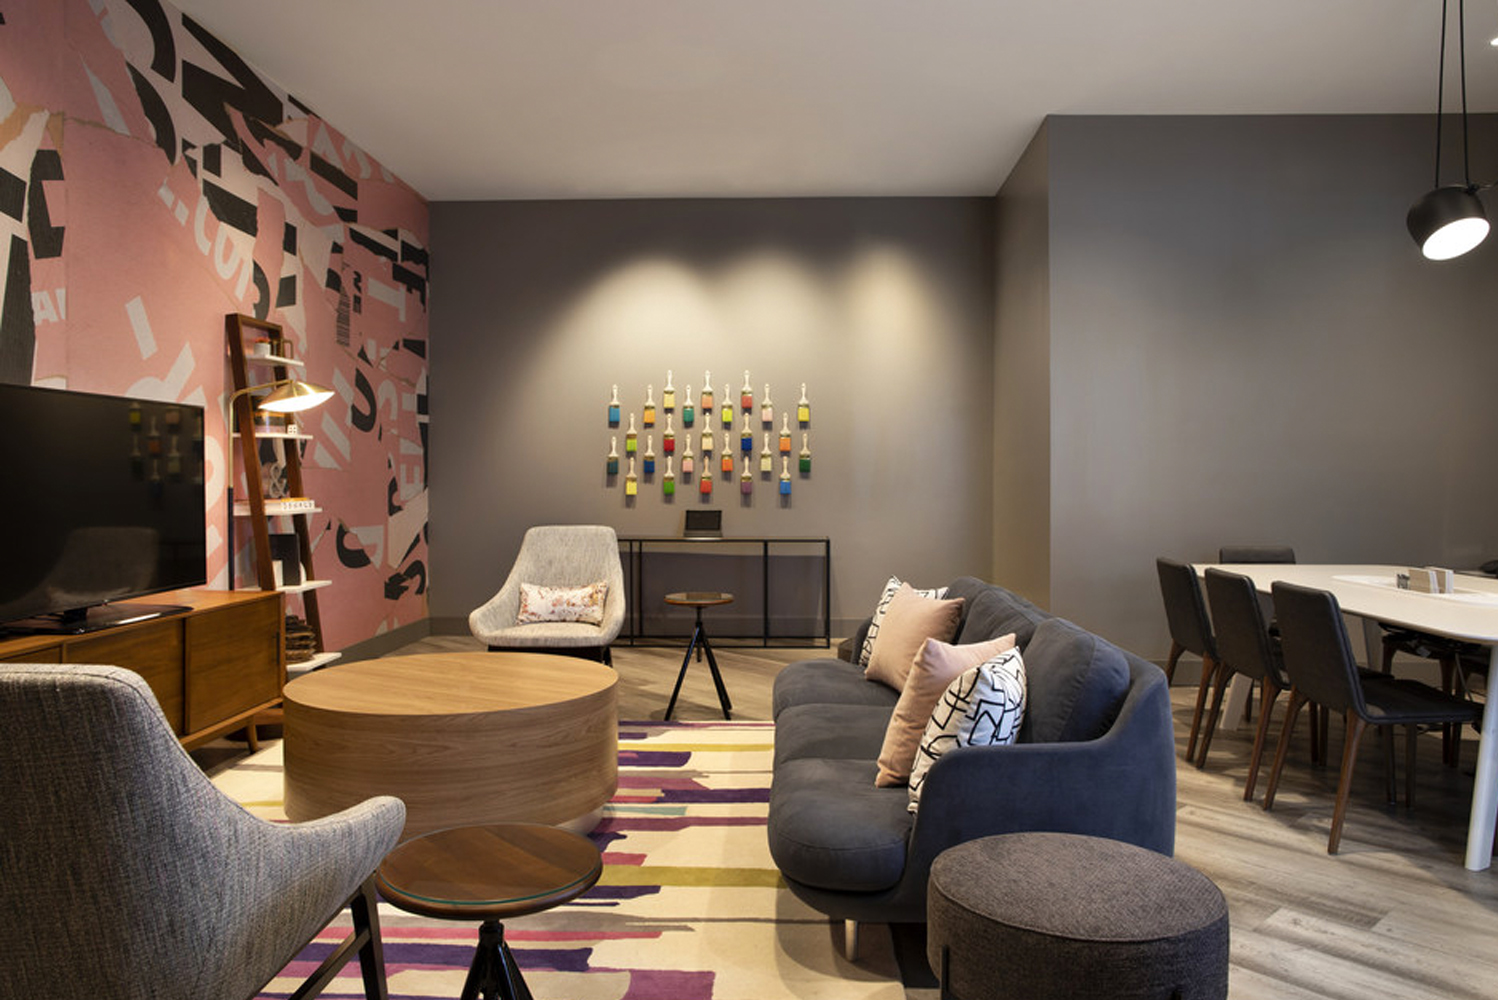 The hotel has design innovations developed for the Crowne Plaza Accelerate brand-transformation program.